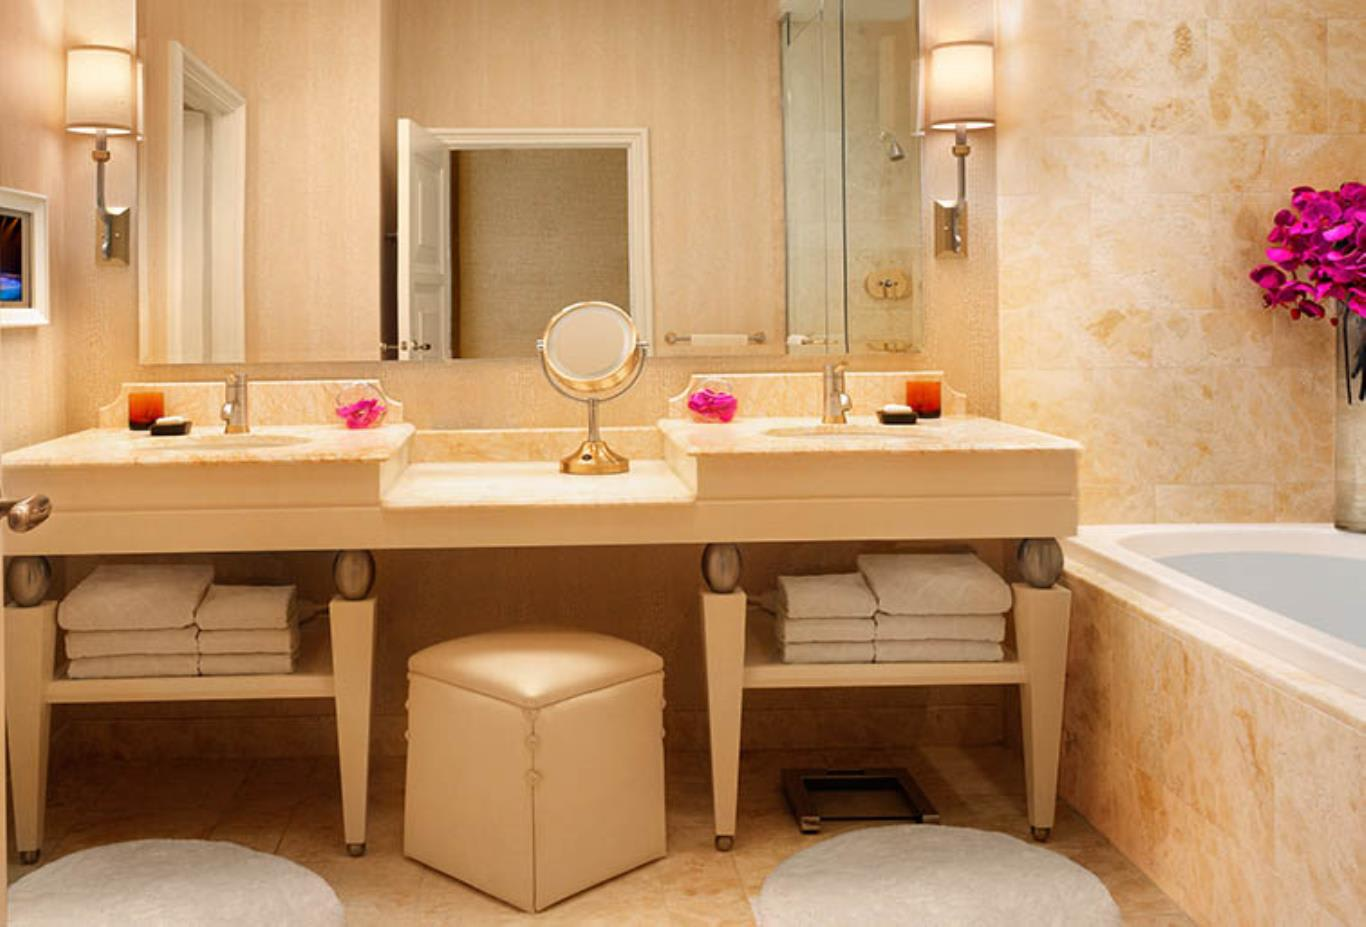 Deluxe Resort Room Bathroom